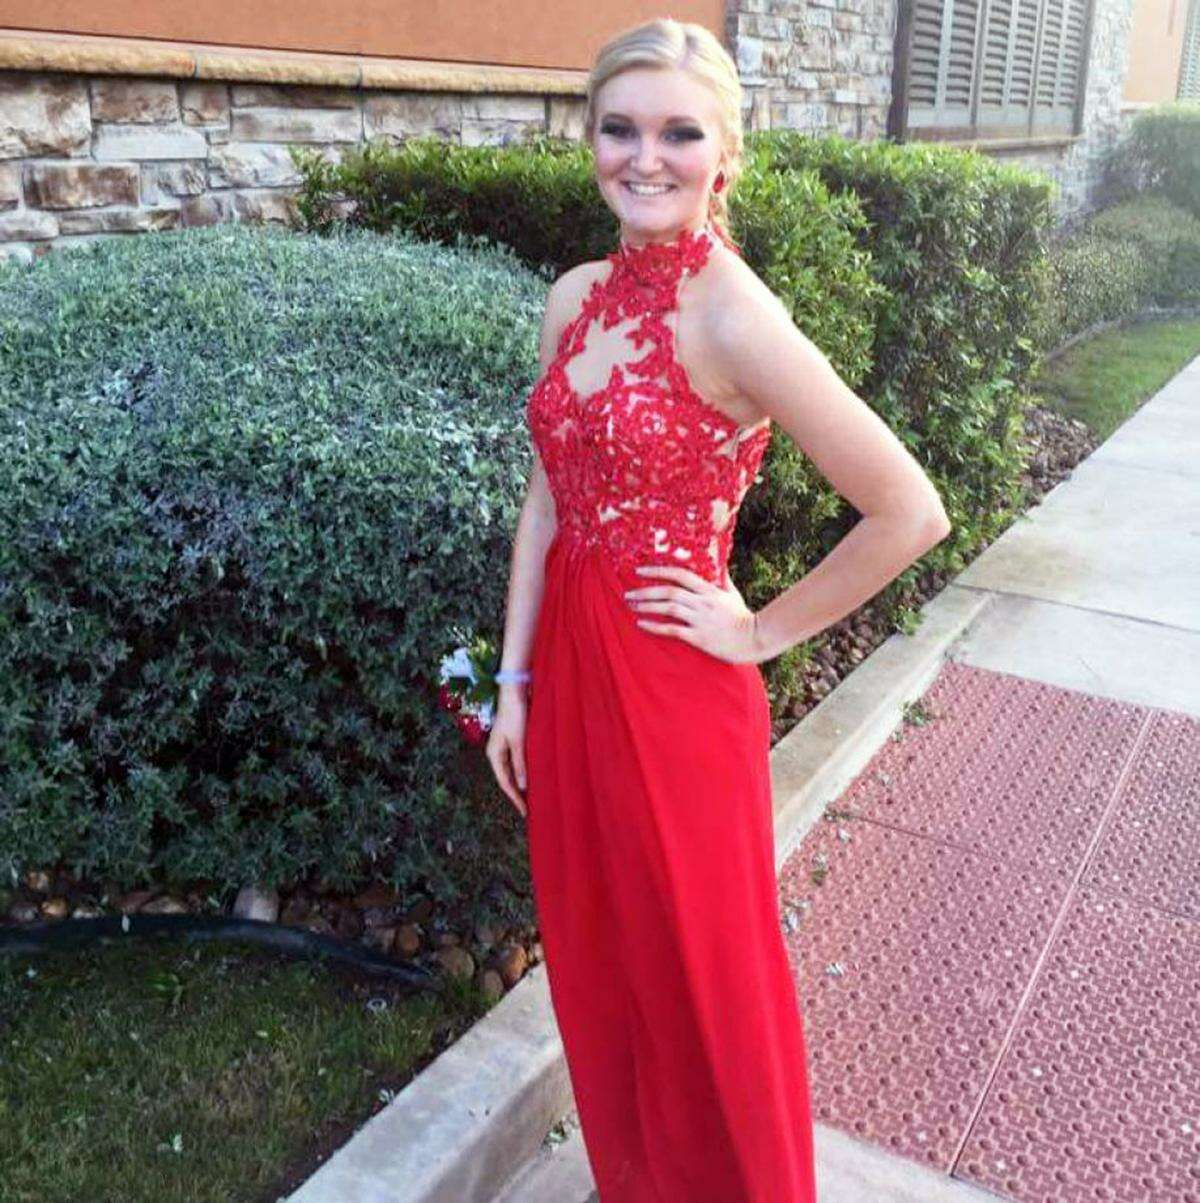 Emilee Hurst, 18, was an outgoing member of Judson High School's dance team and Future Farmers of America program. She was killed by her ex-boyfriend, Mark Villarreal, on April 11, 2016. Distressed by the prevalence of teen dating violence, several parents gathered Thursday at the YWCA San Antonio to discuss the risk factors of teen dating violence and what can be done to prevent such abuse.